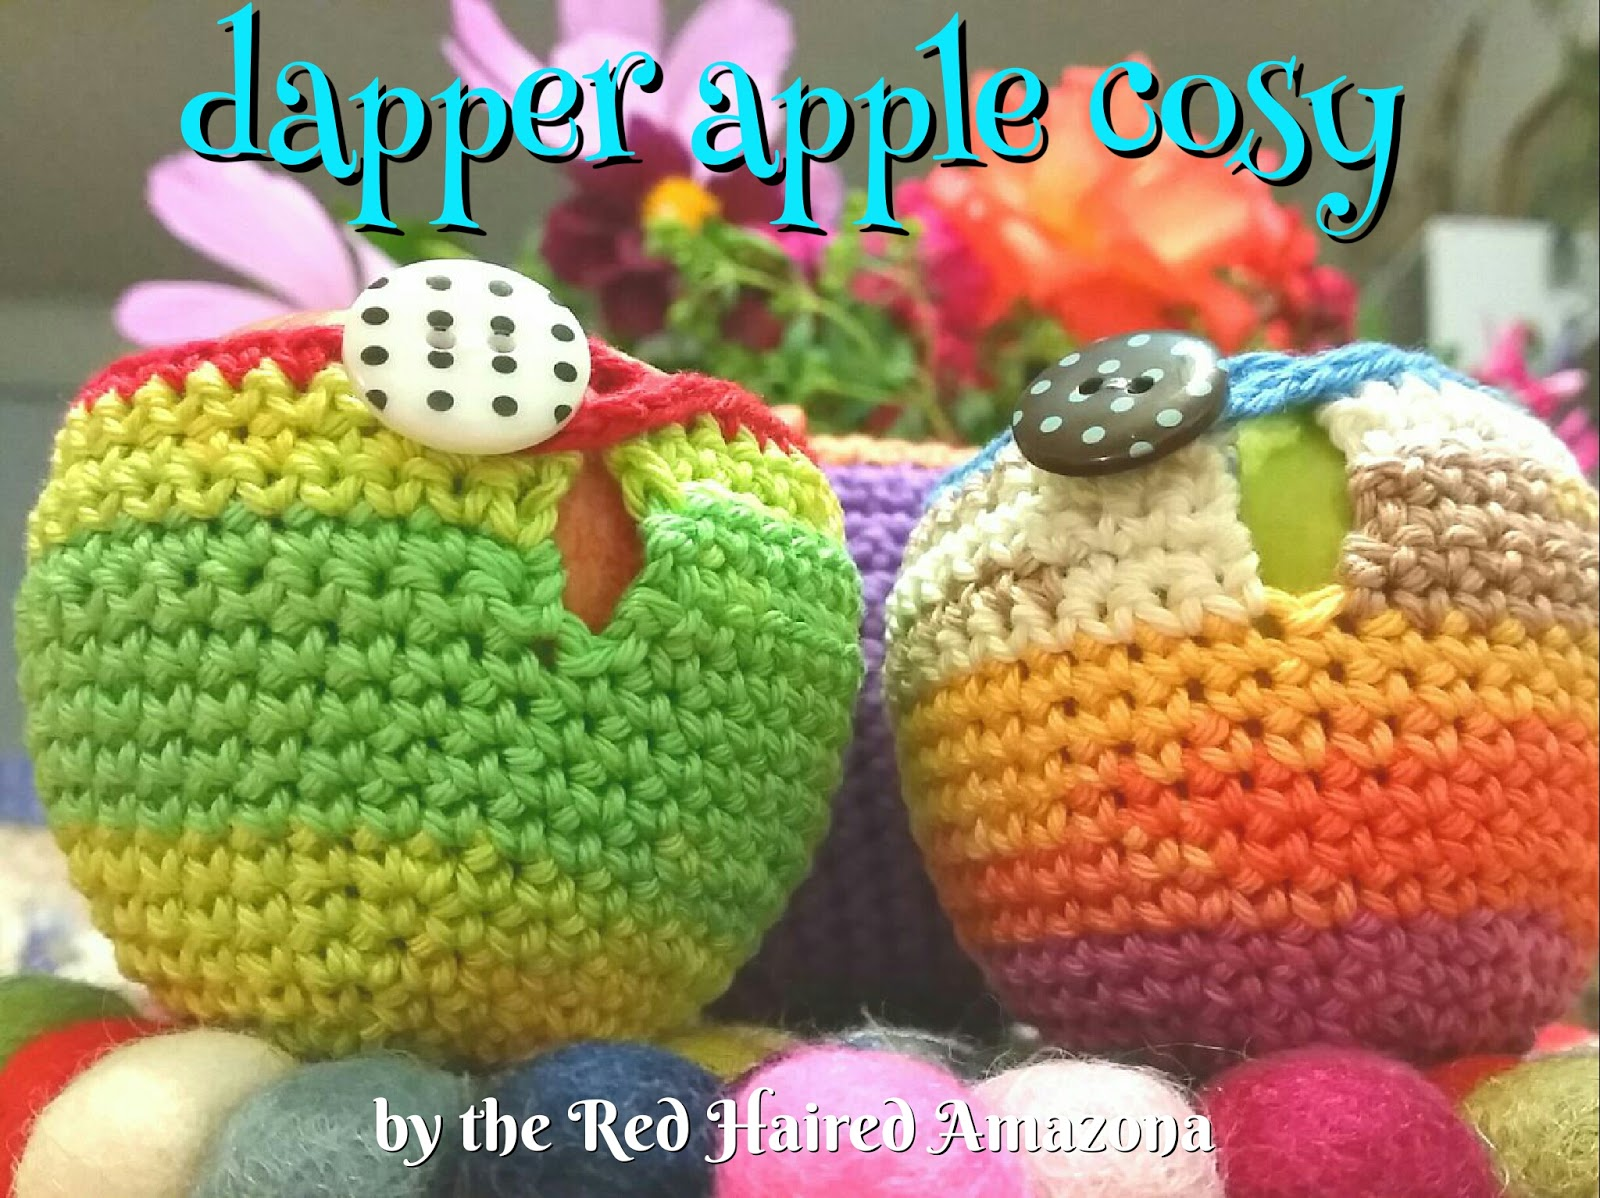 Red Haired Amazona: Dapper Apple Cosy Tutorial